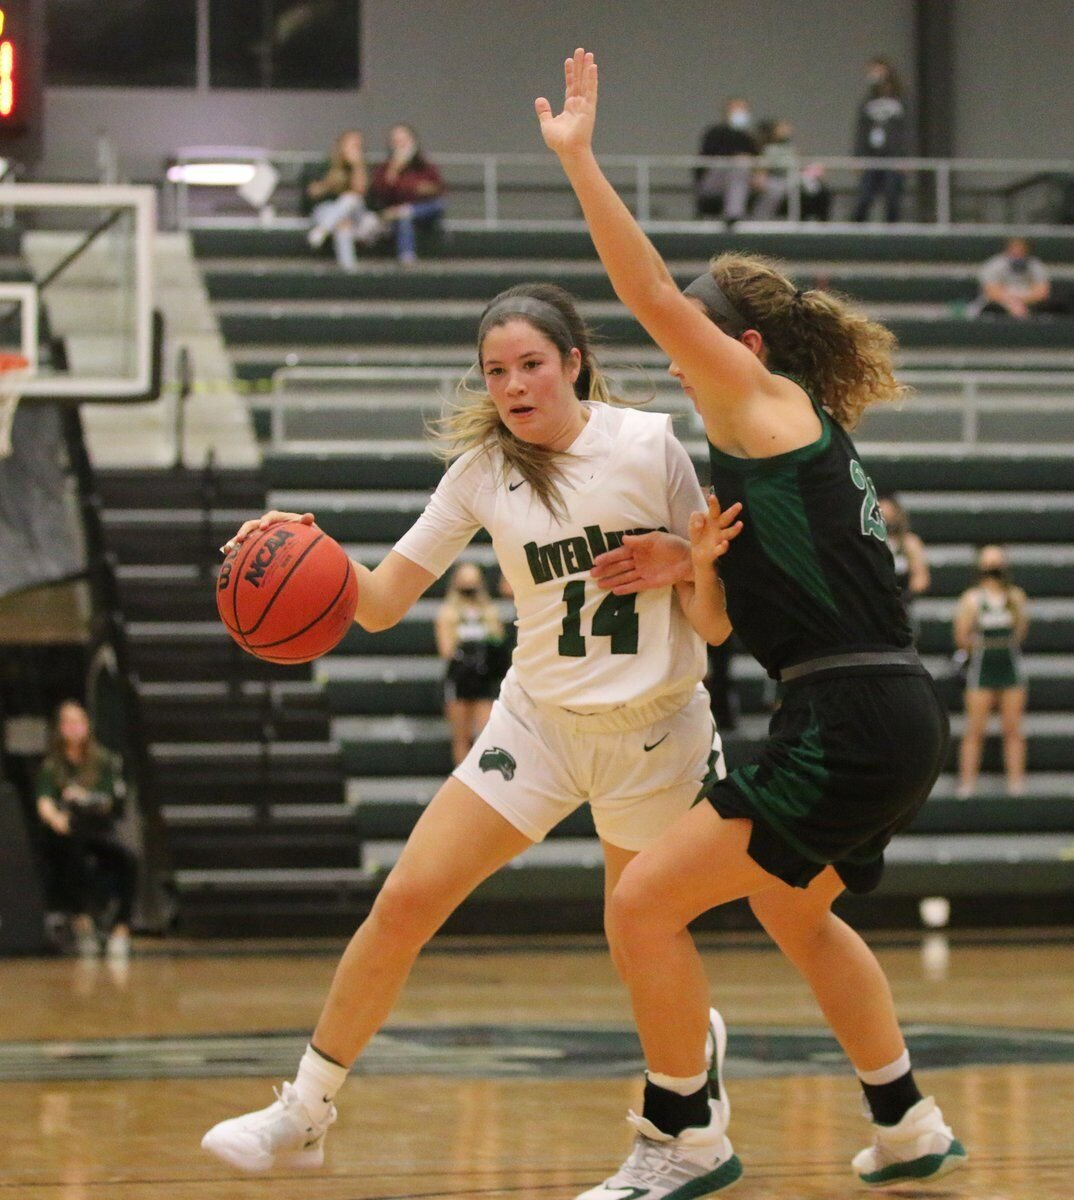 Strong start: RiverHawks open season with 64-56 win over Northwest Missouri